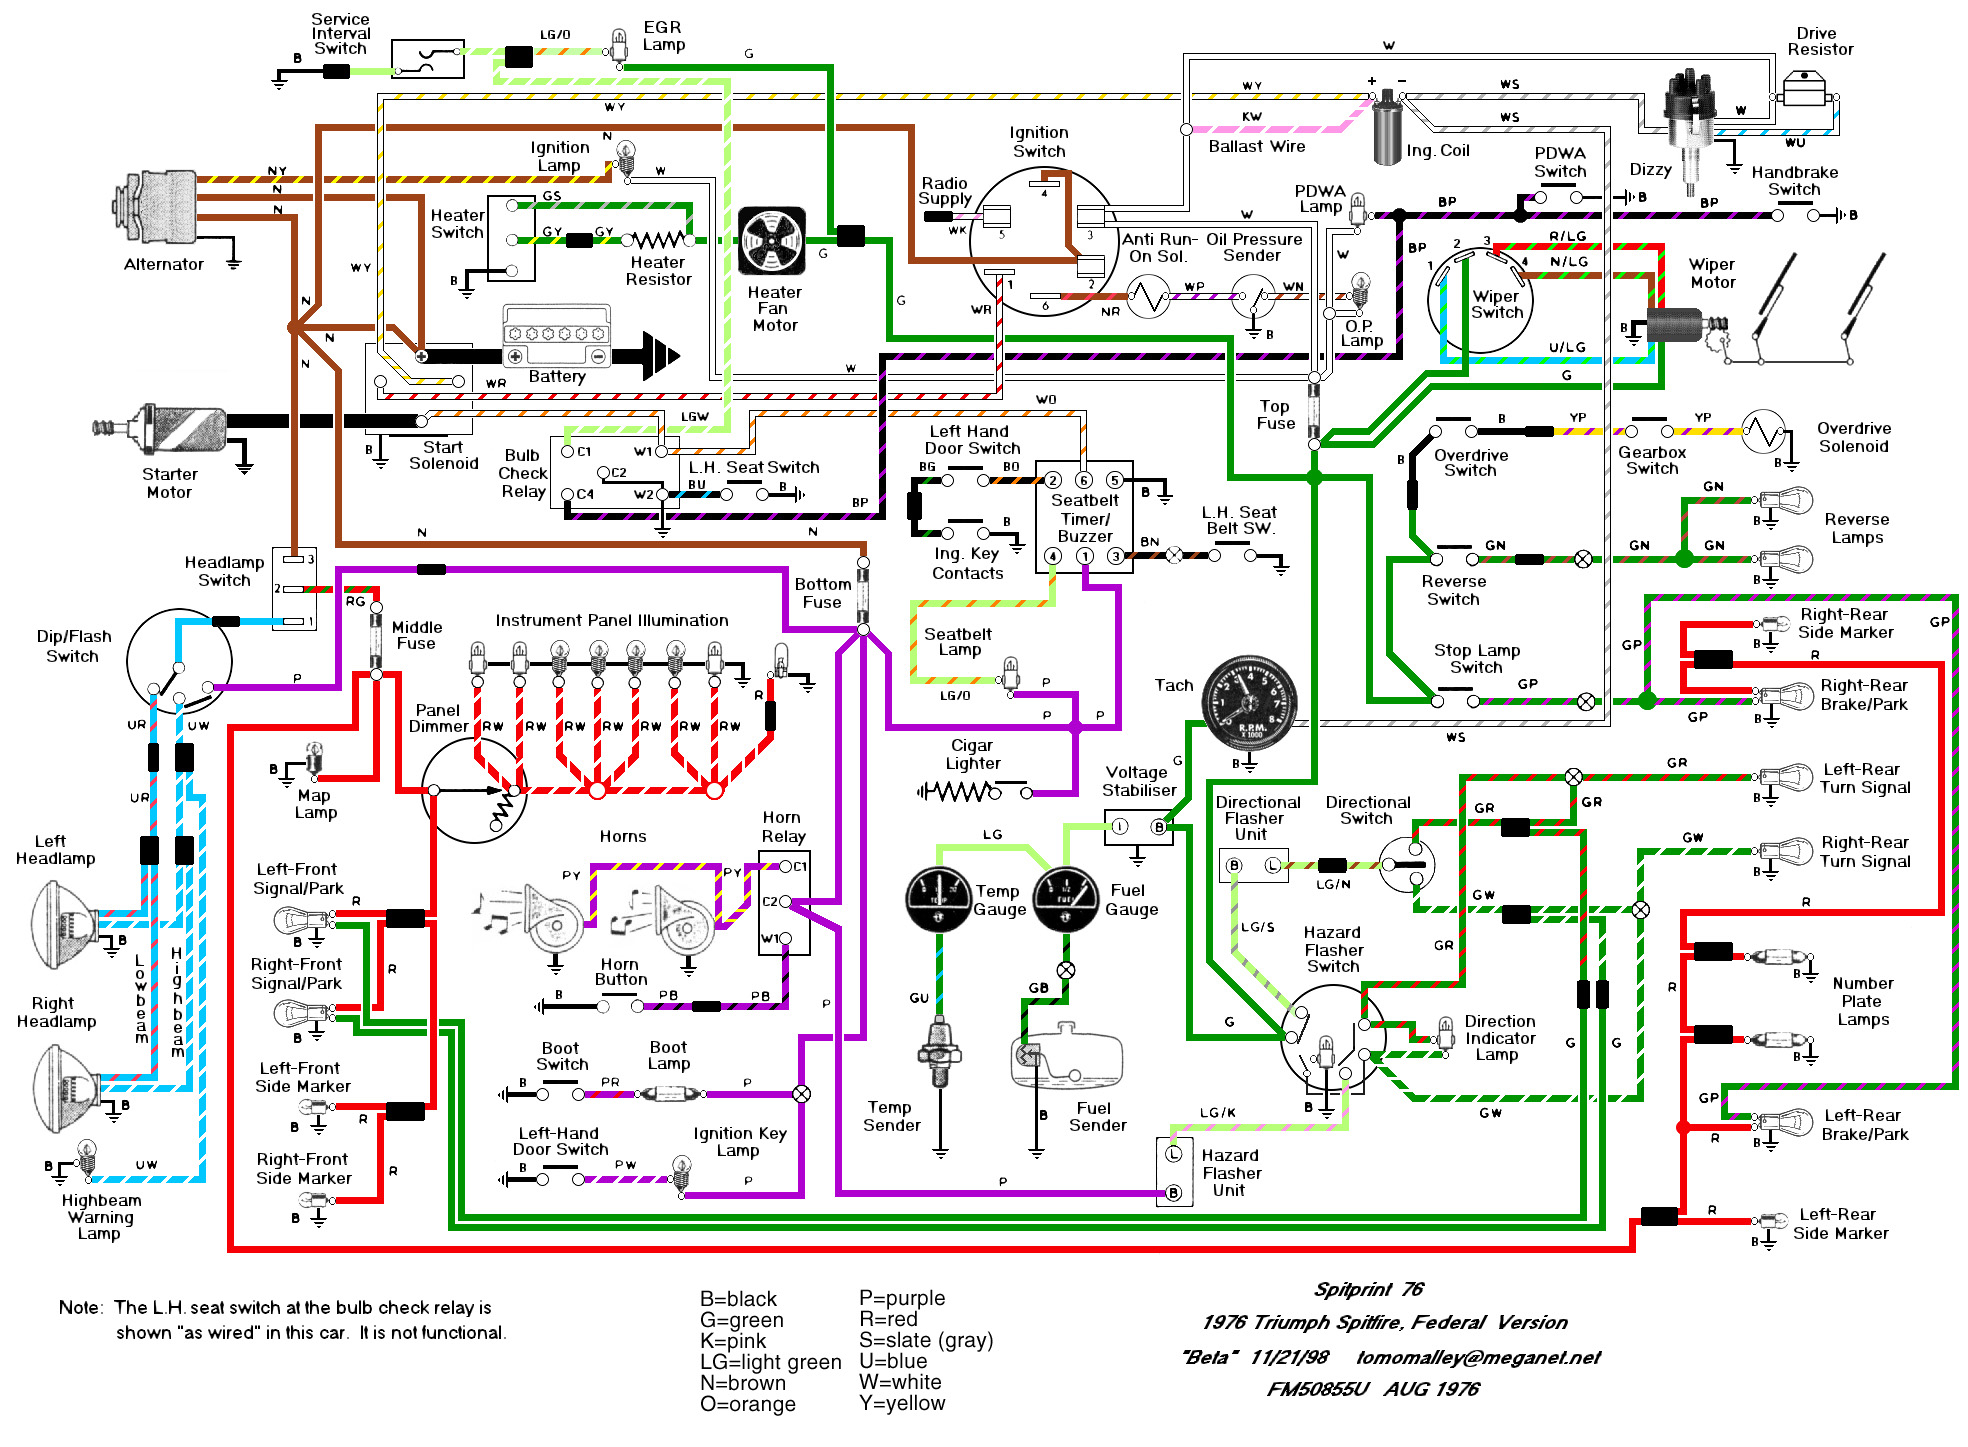 76diagram hd wiring diagram beats solo hd wiring diagram \u2022 wiring diagrams automotive wiring diagrams for dummies at edmiracle.co